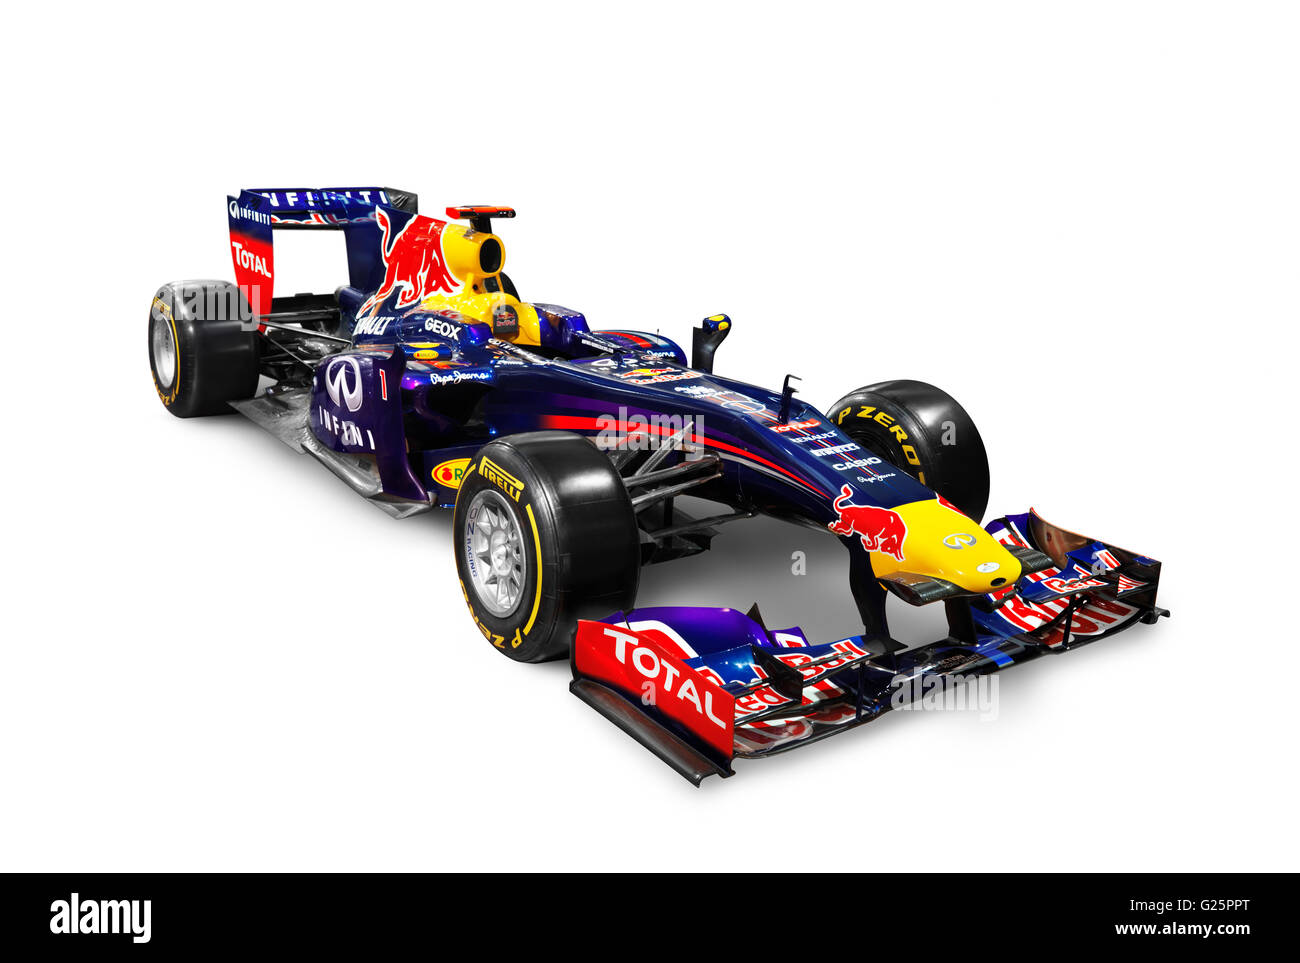 2013 Infinity Red Bull Formula One Race Car RB9